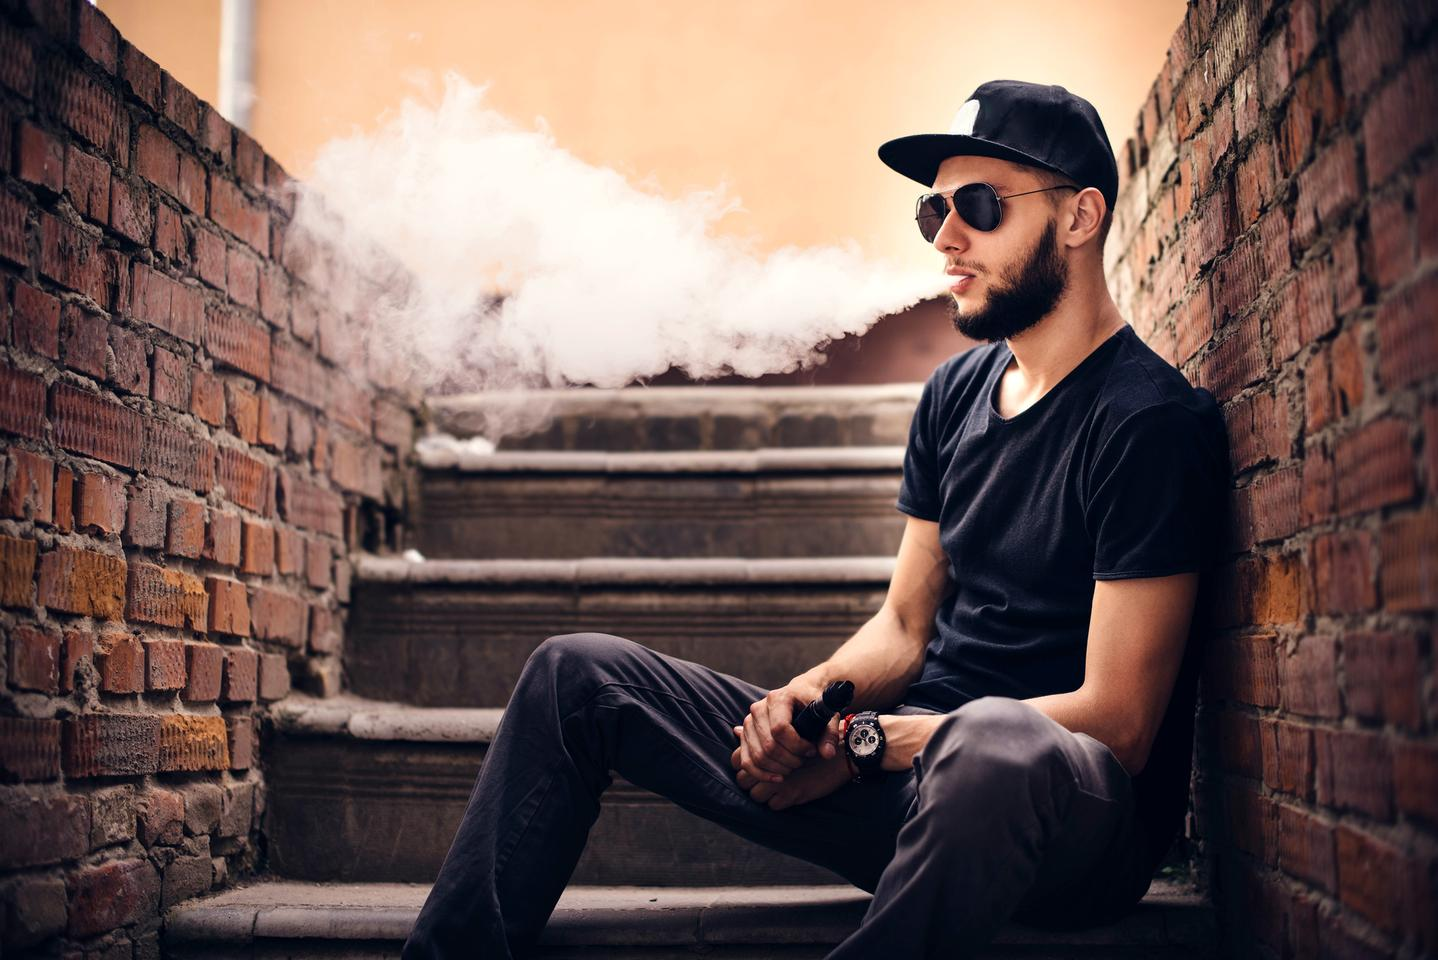 Two new studies present a correlation between cognitive complaints and e-cigarette use